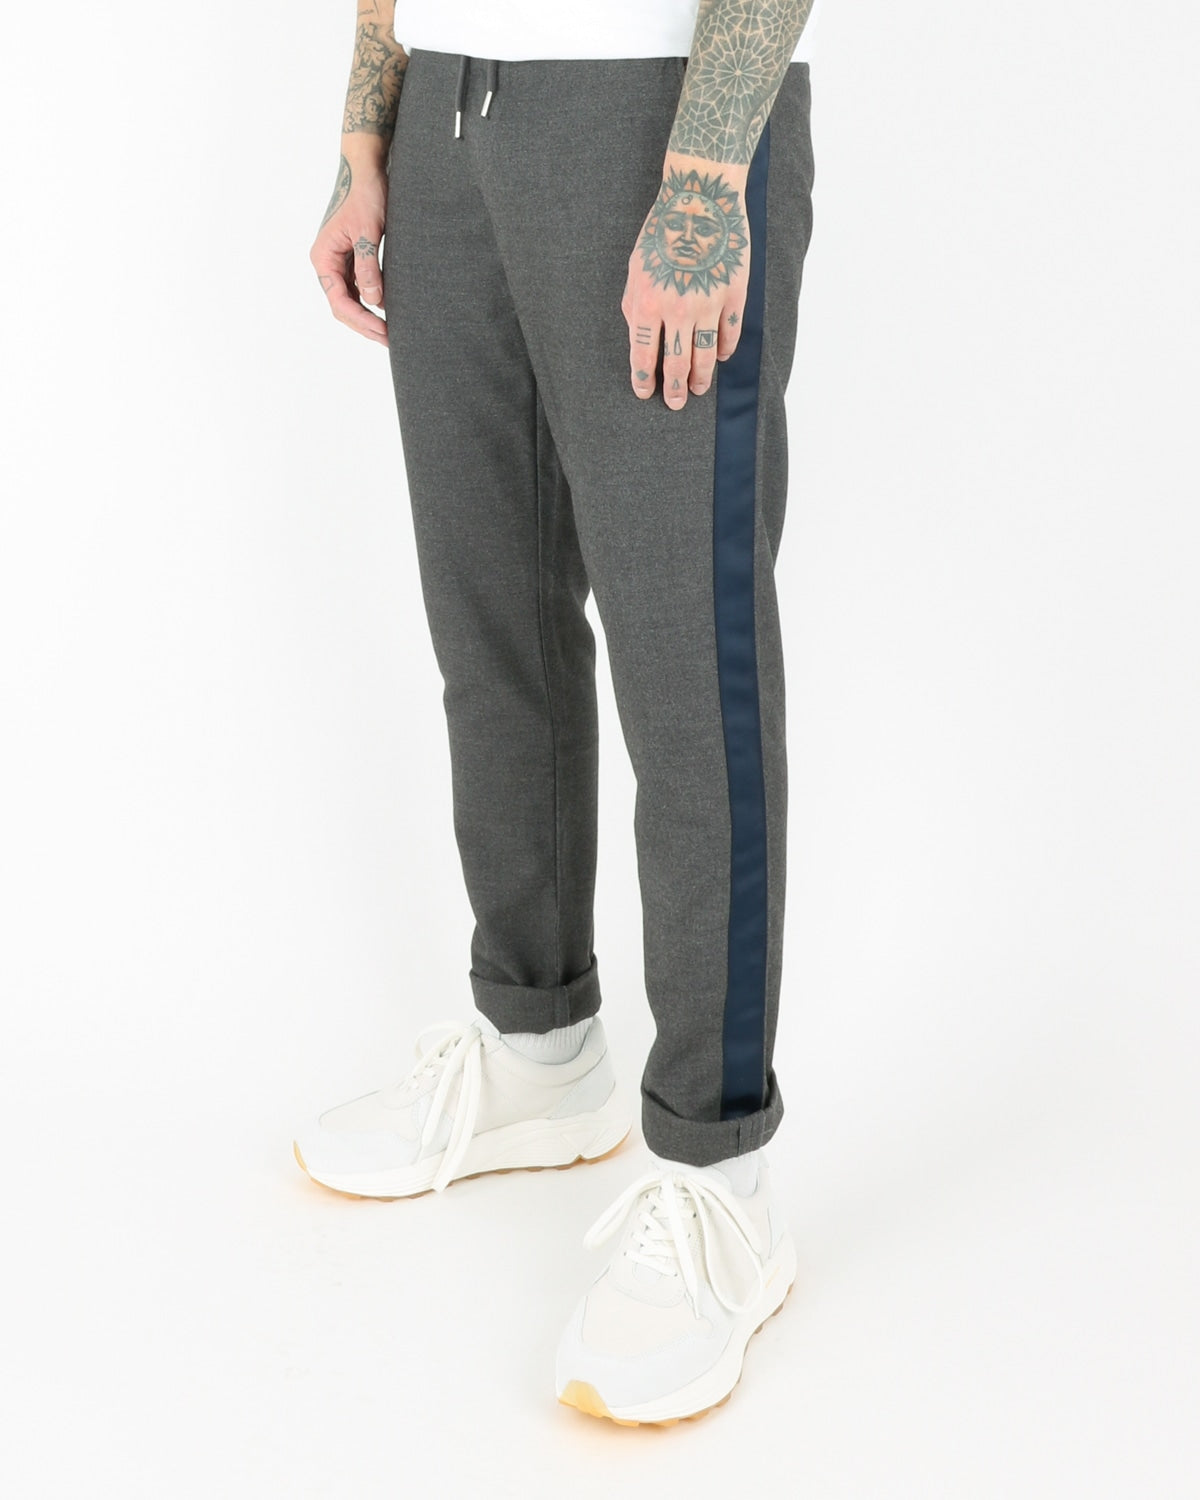 we are copenhagen_janzik tape pants_dark grey melange_view_2_3